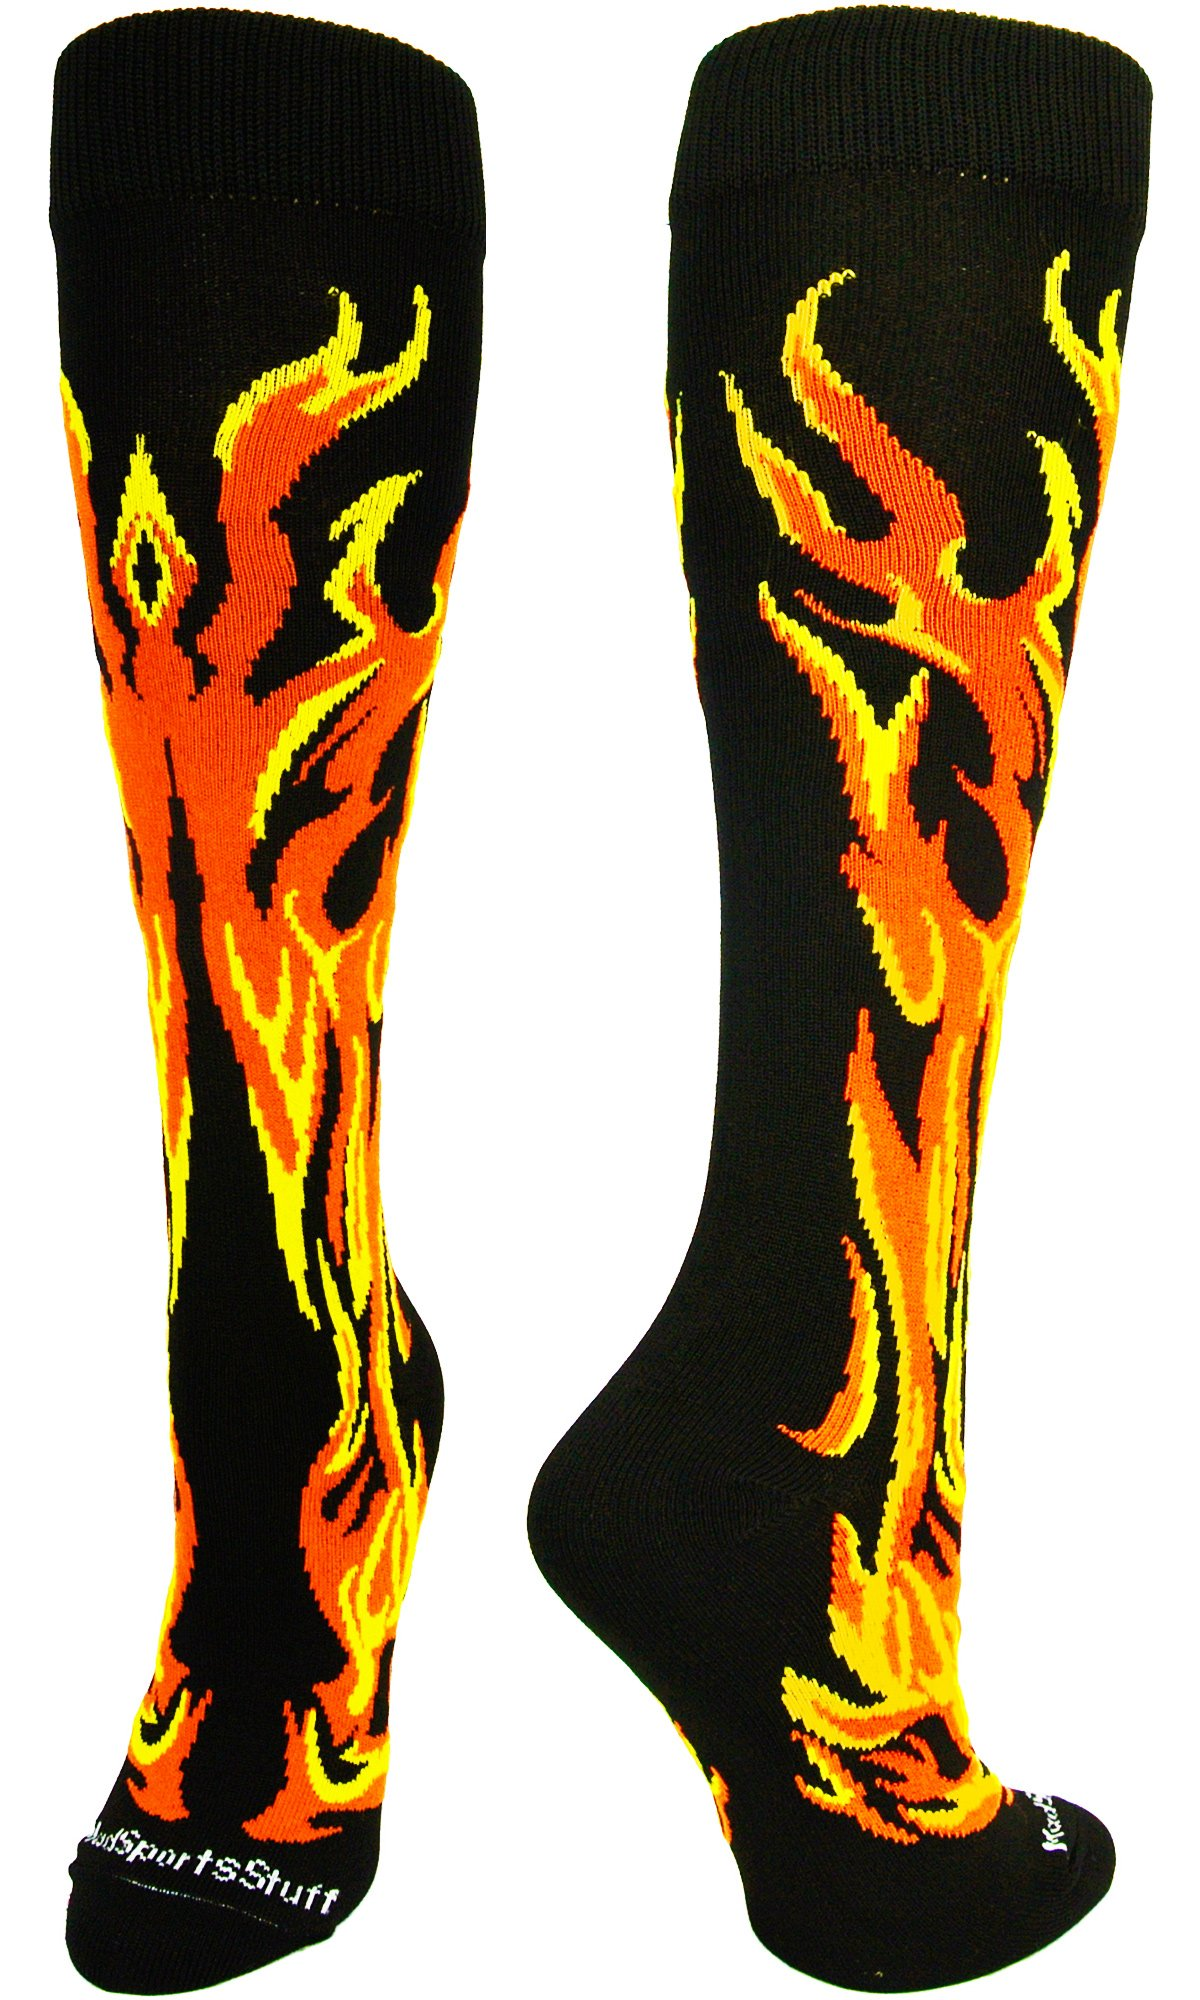 MadSportsStuff Flame Socks Athletic Over the Calf Socks (Black/Orange/Gold, Small)